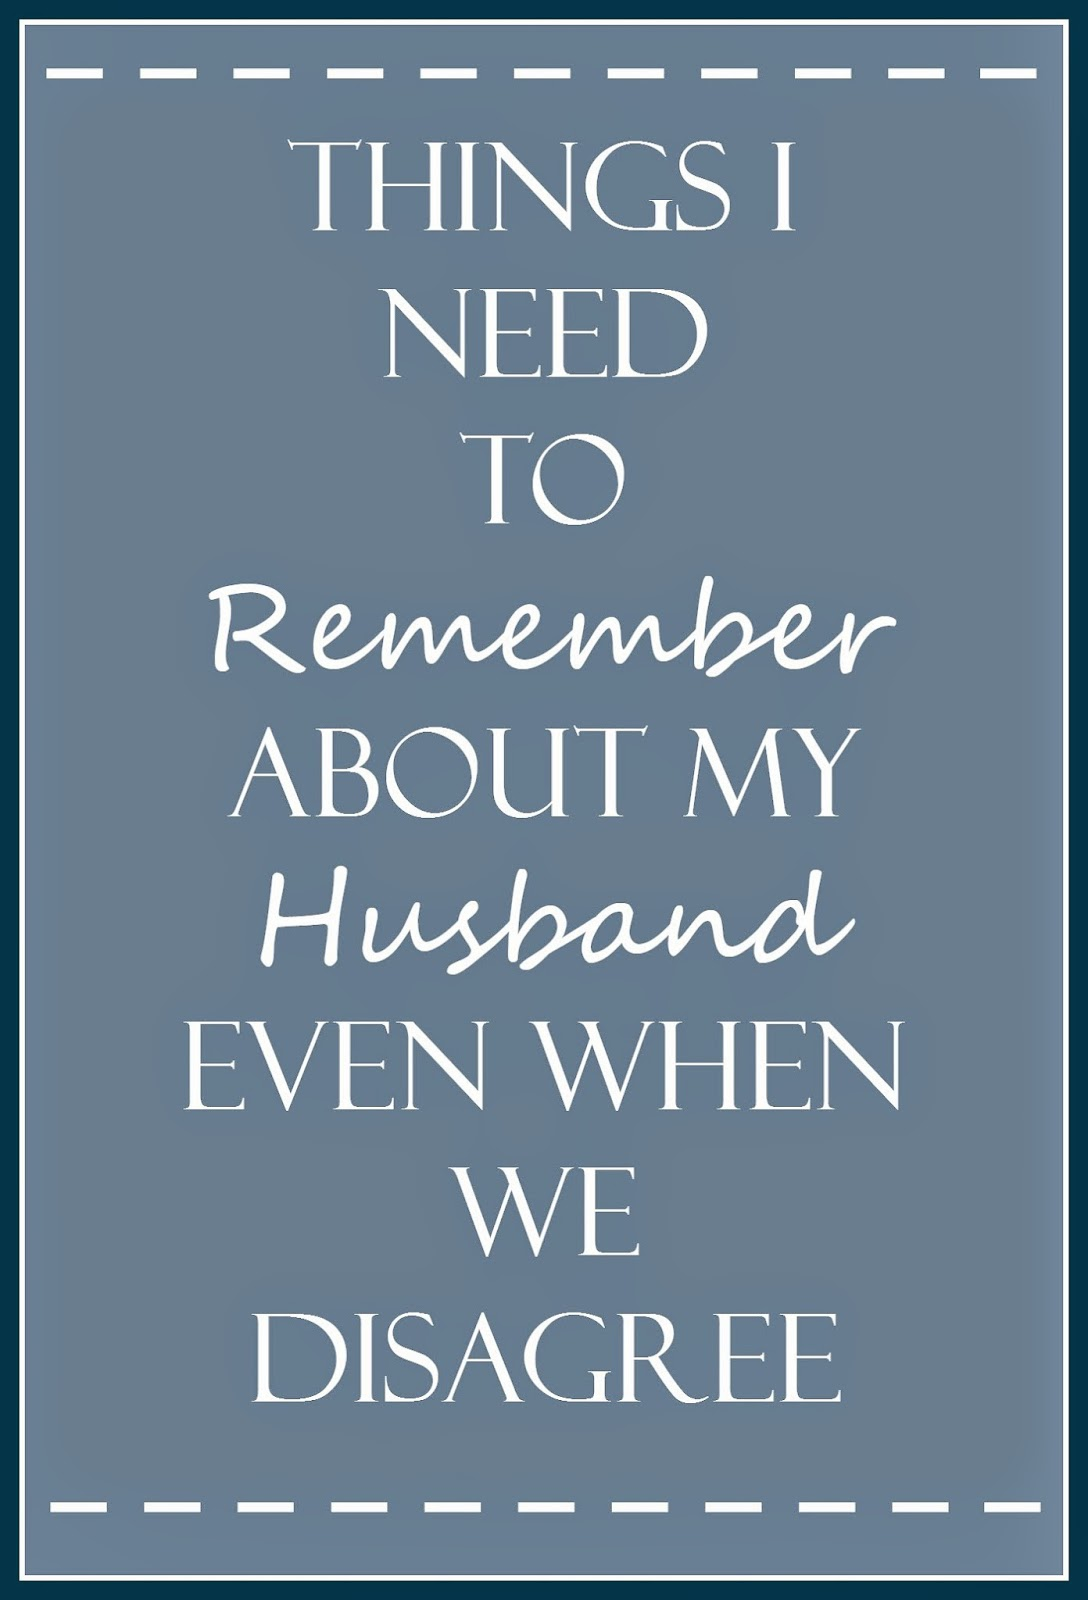 tips for handling disagreements in marriage